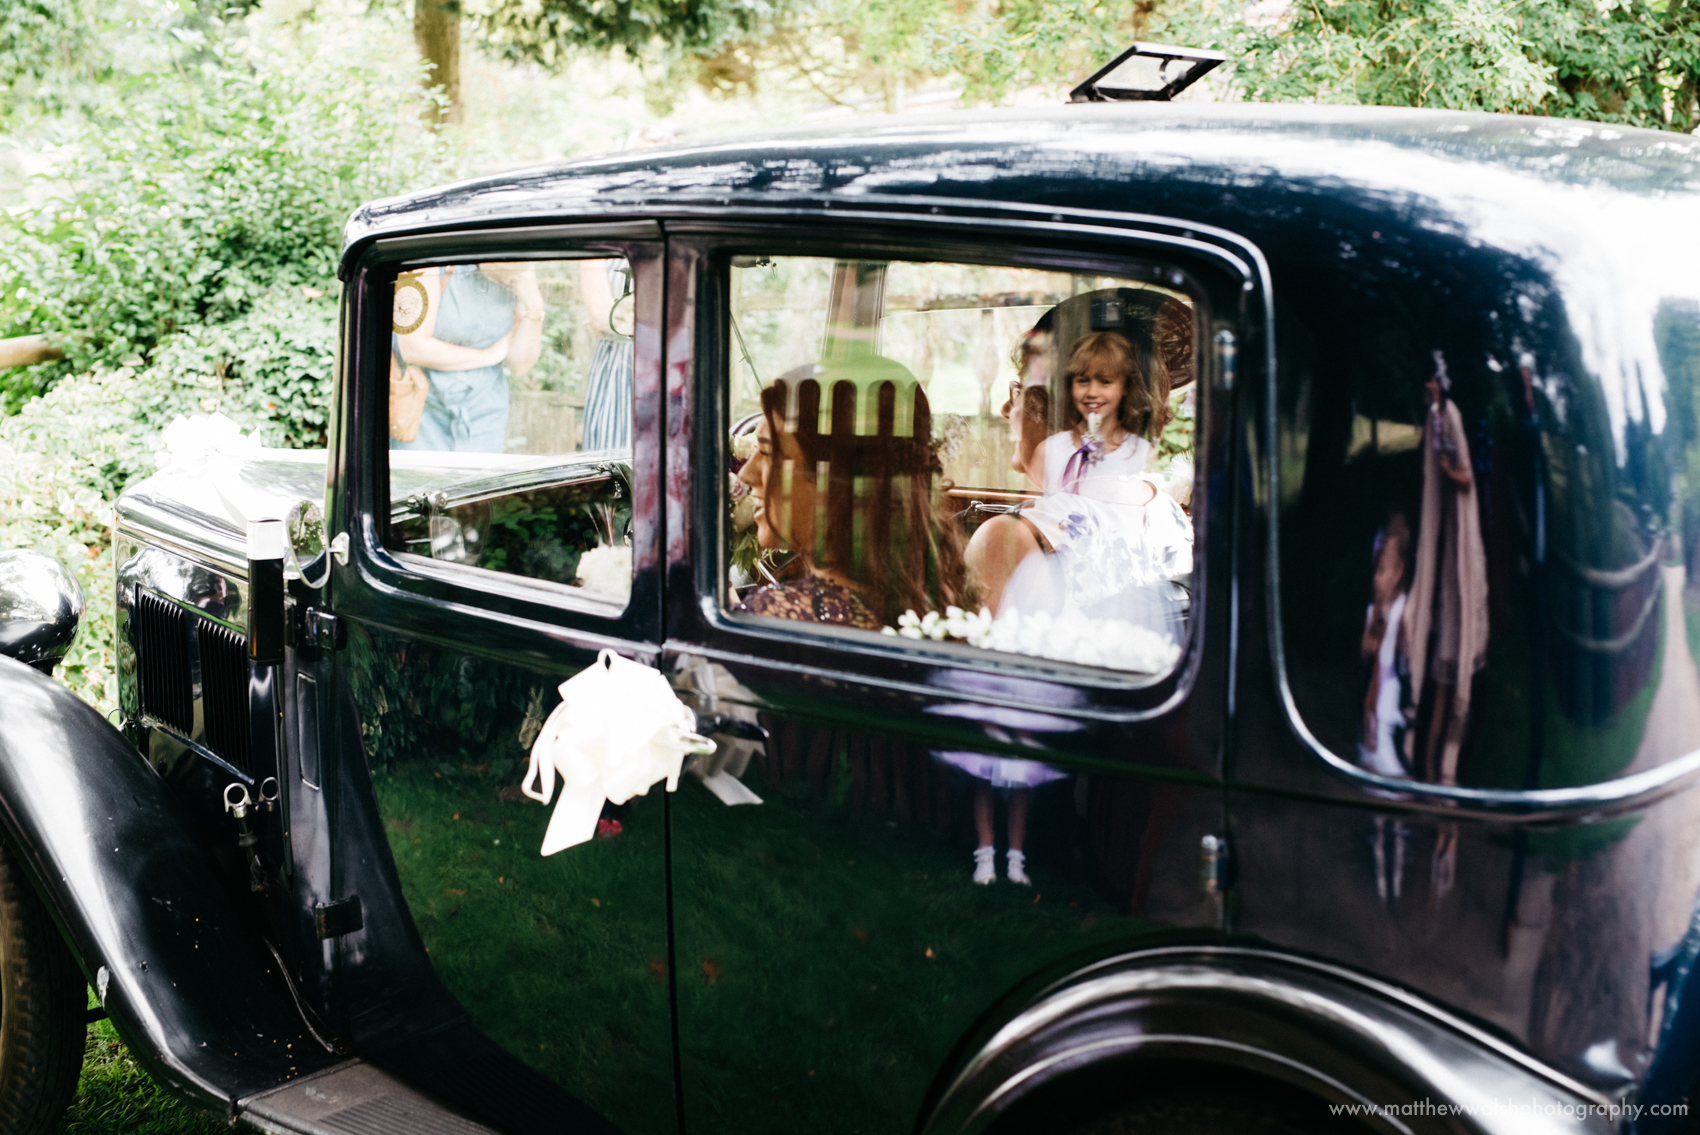 The bridesmaids arrive in an old wedding car